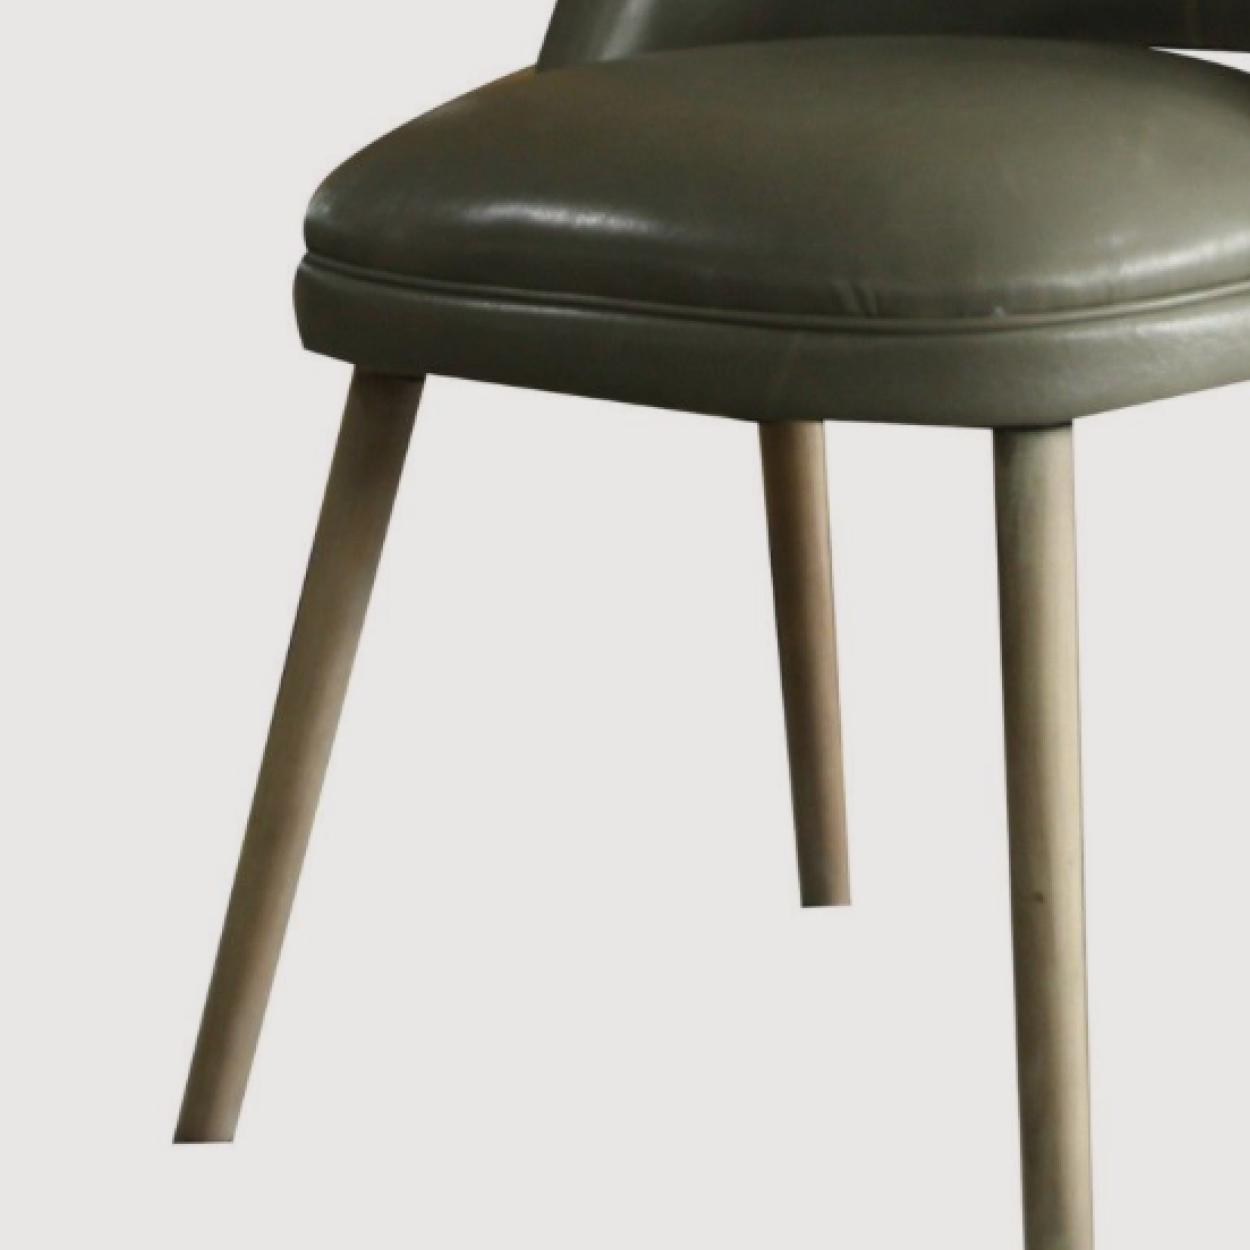 Helix Green Leather Dining Chair gallery image